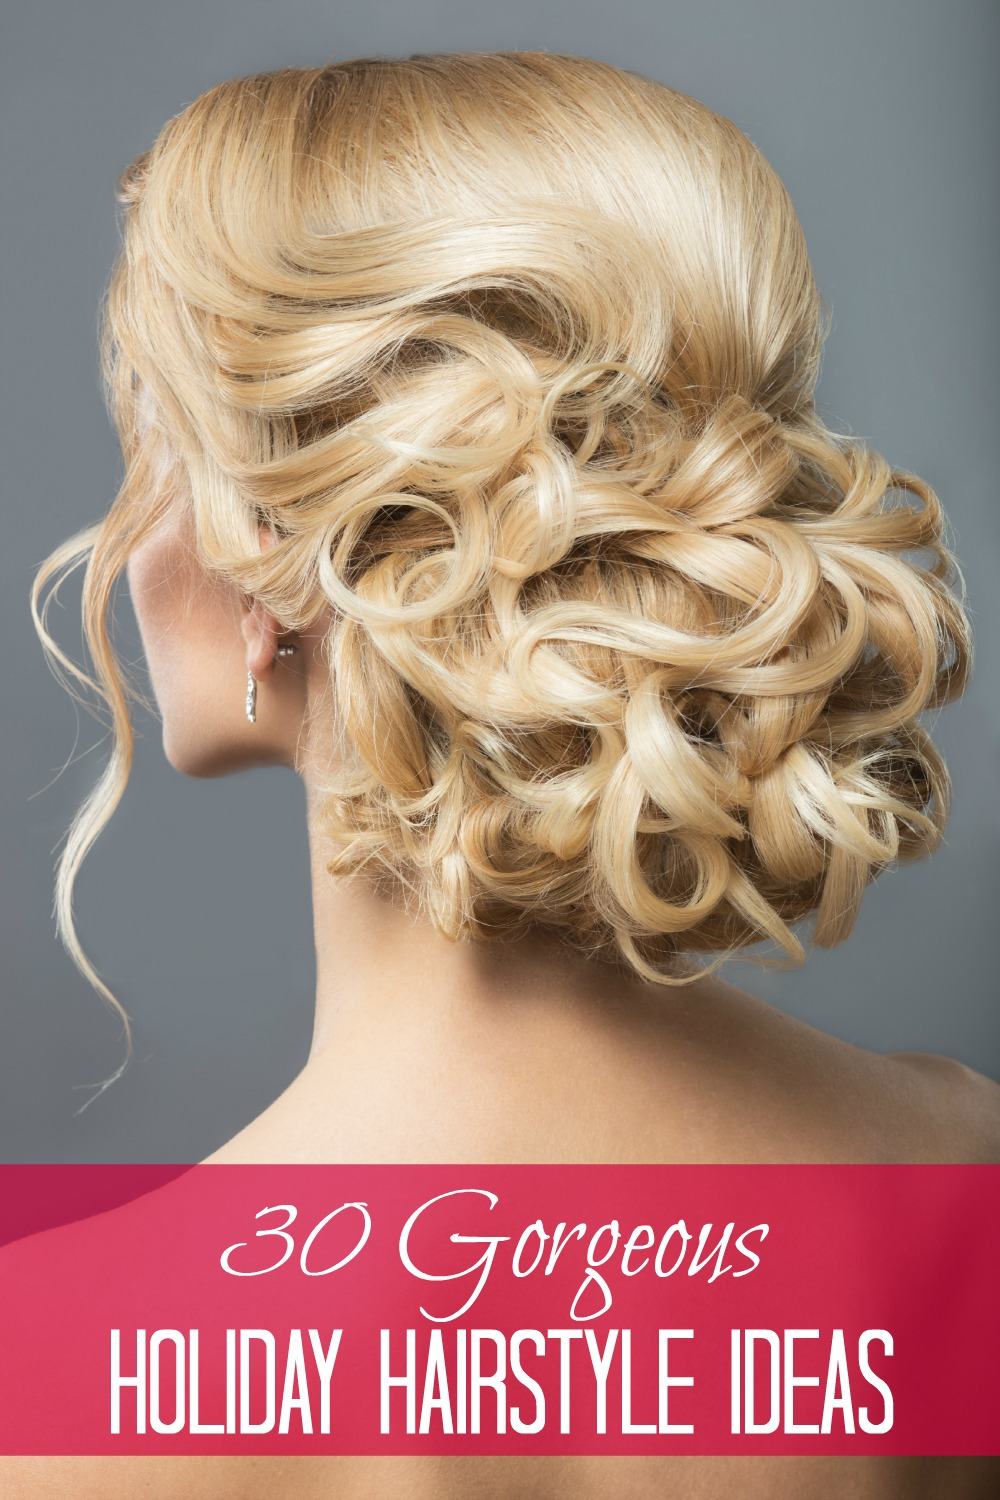 Hairstyles Holiday : Are you looking for Holiday hairstyles for that event youre attending ...